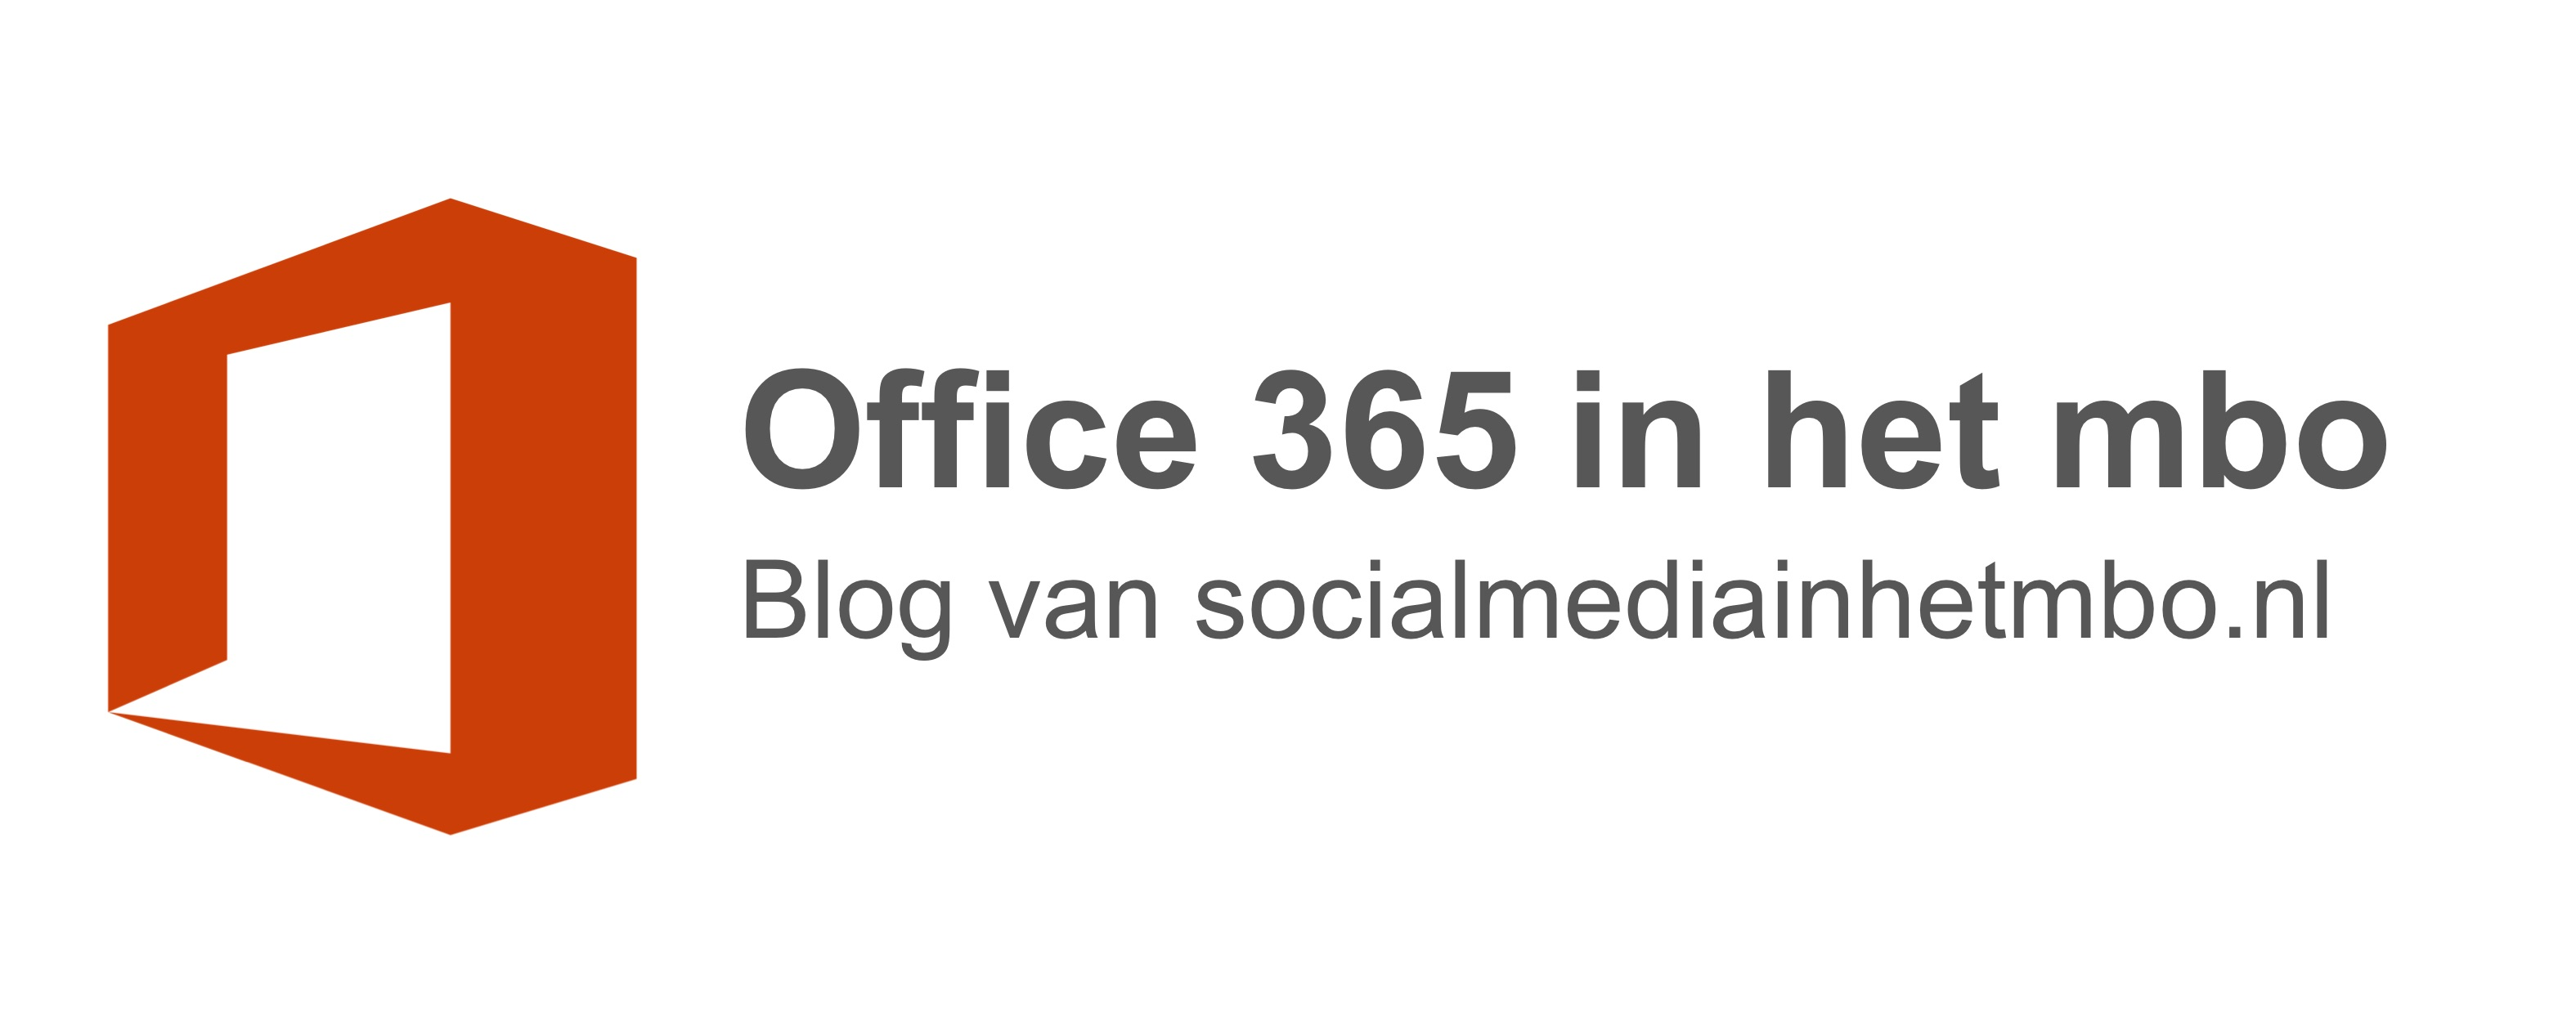 Office 365 in het mbo